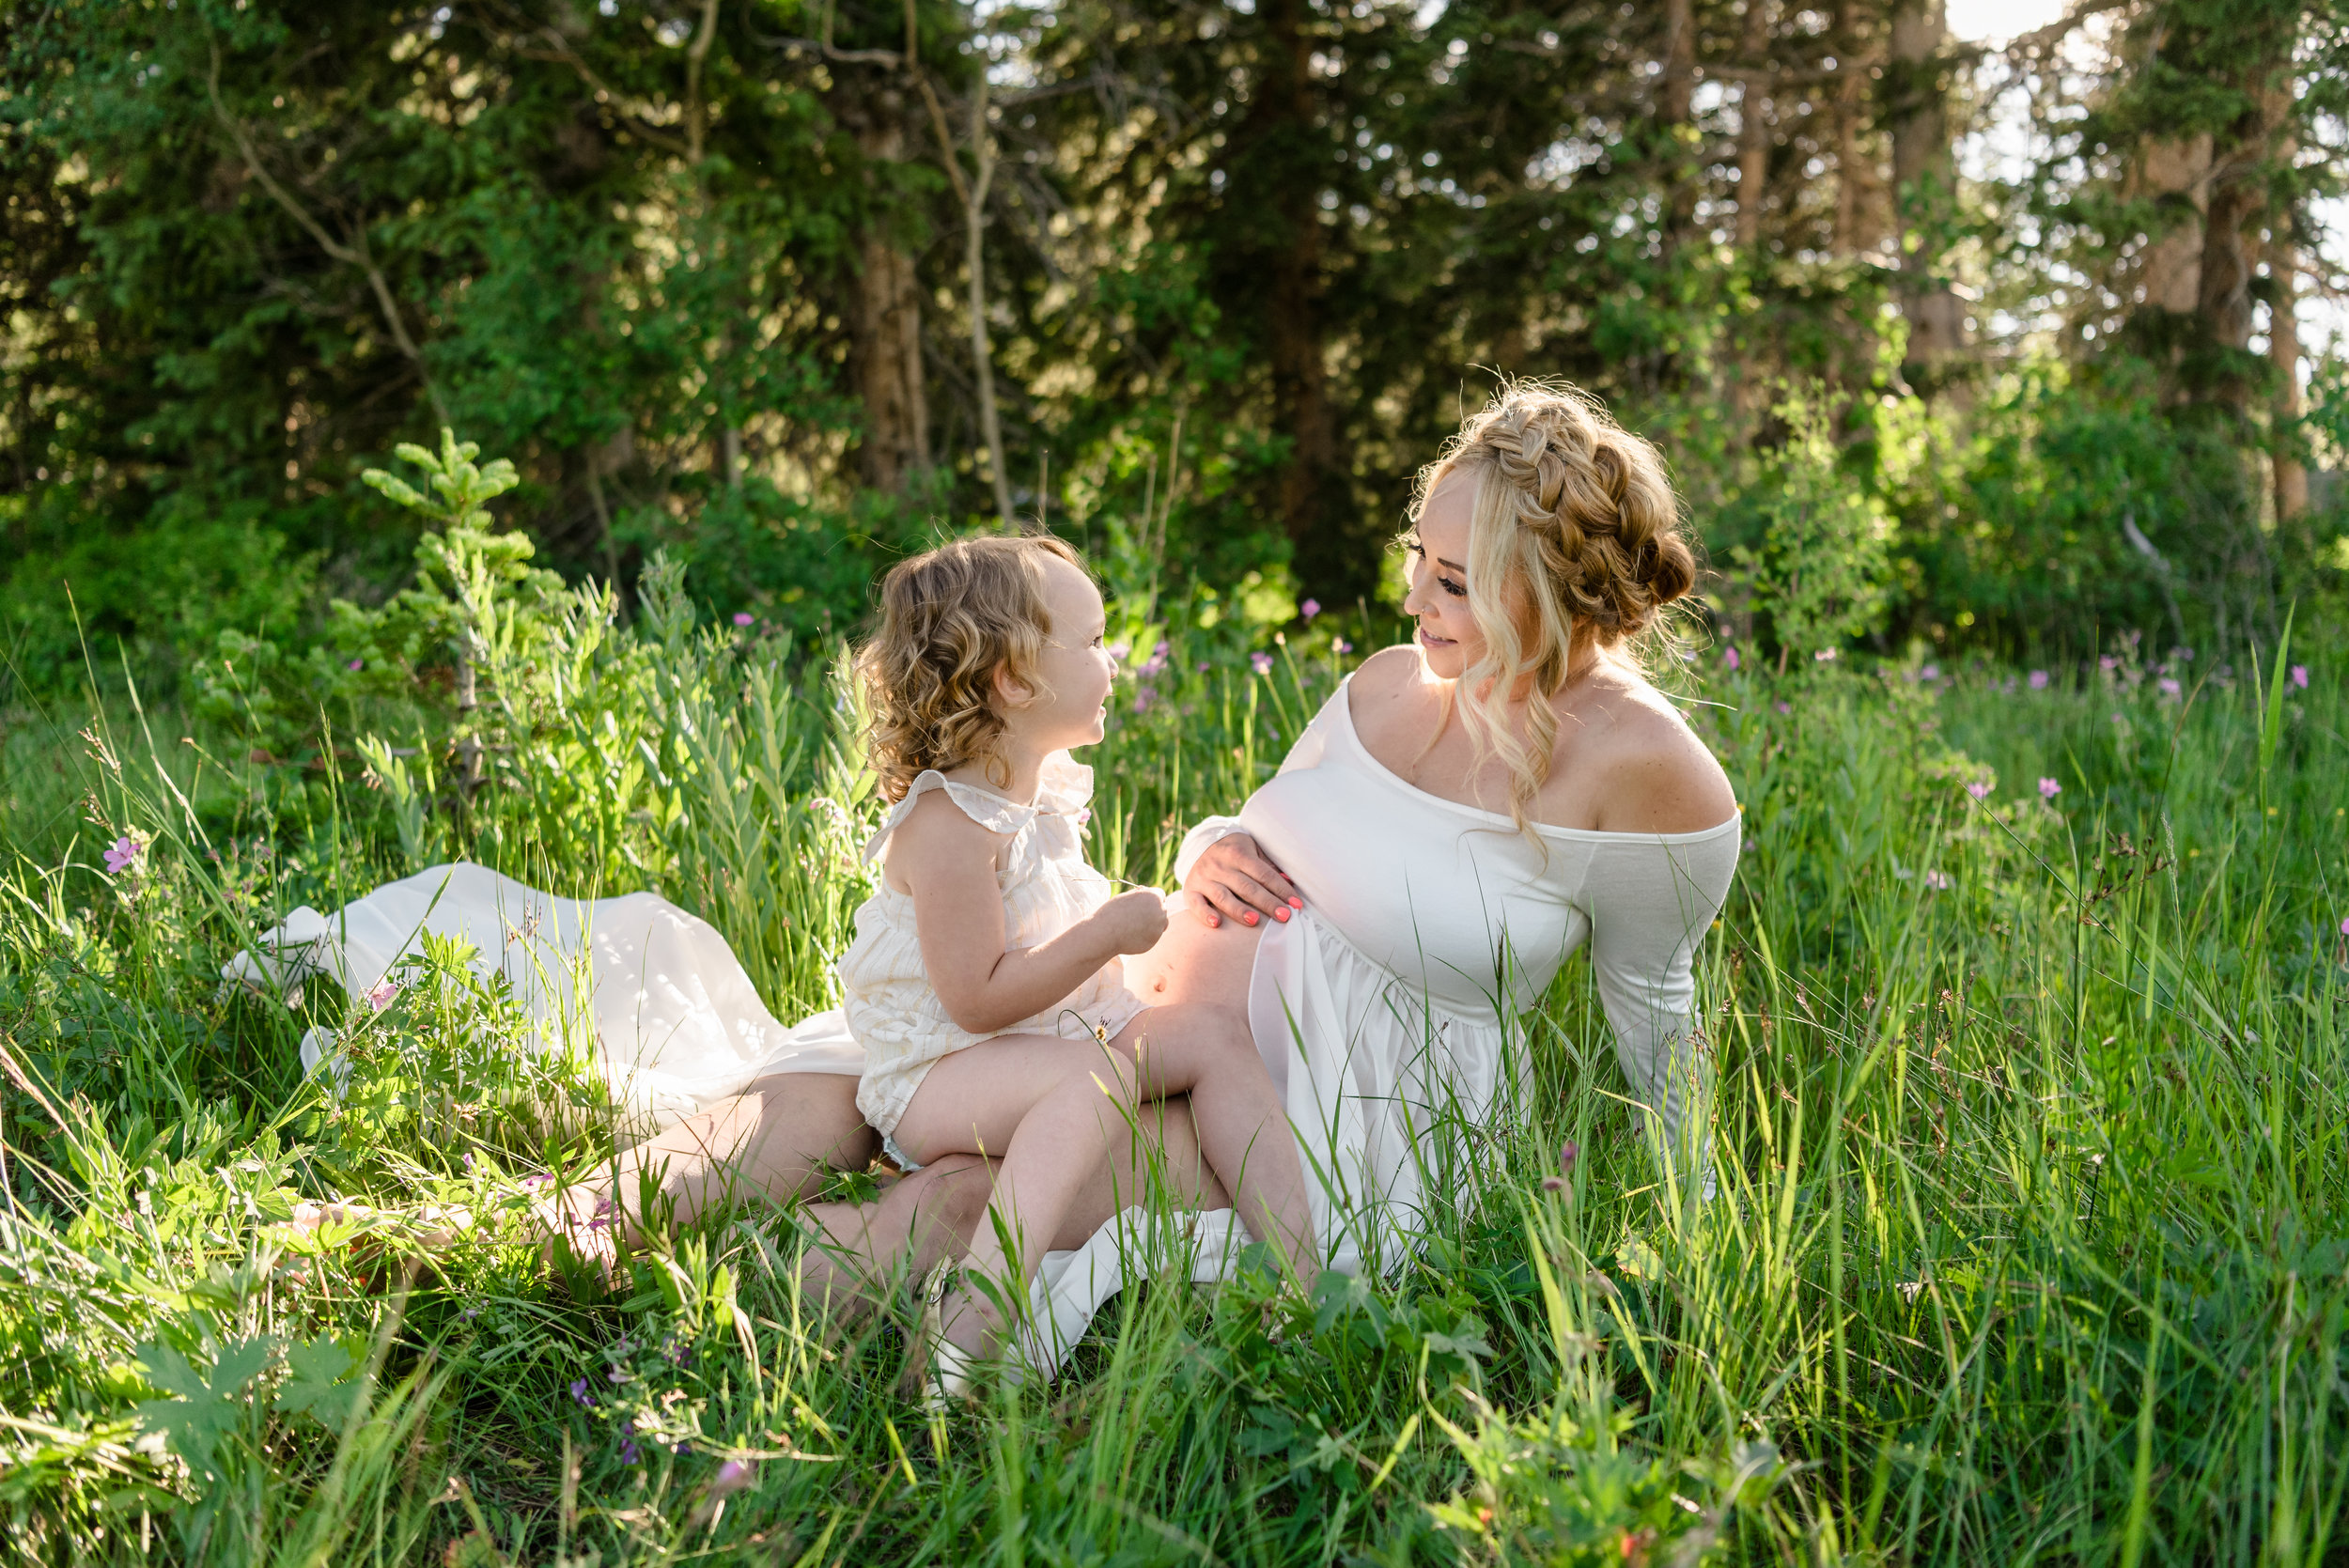 The sweetest of sweet mother and daughter moments.